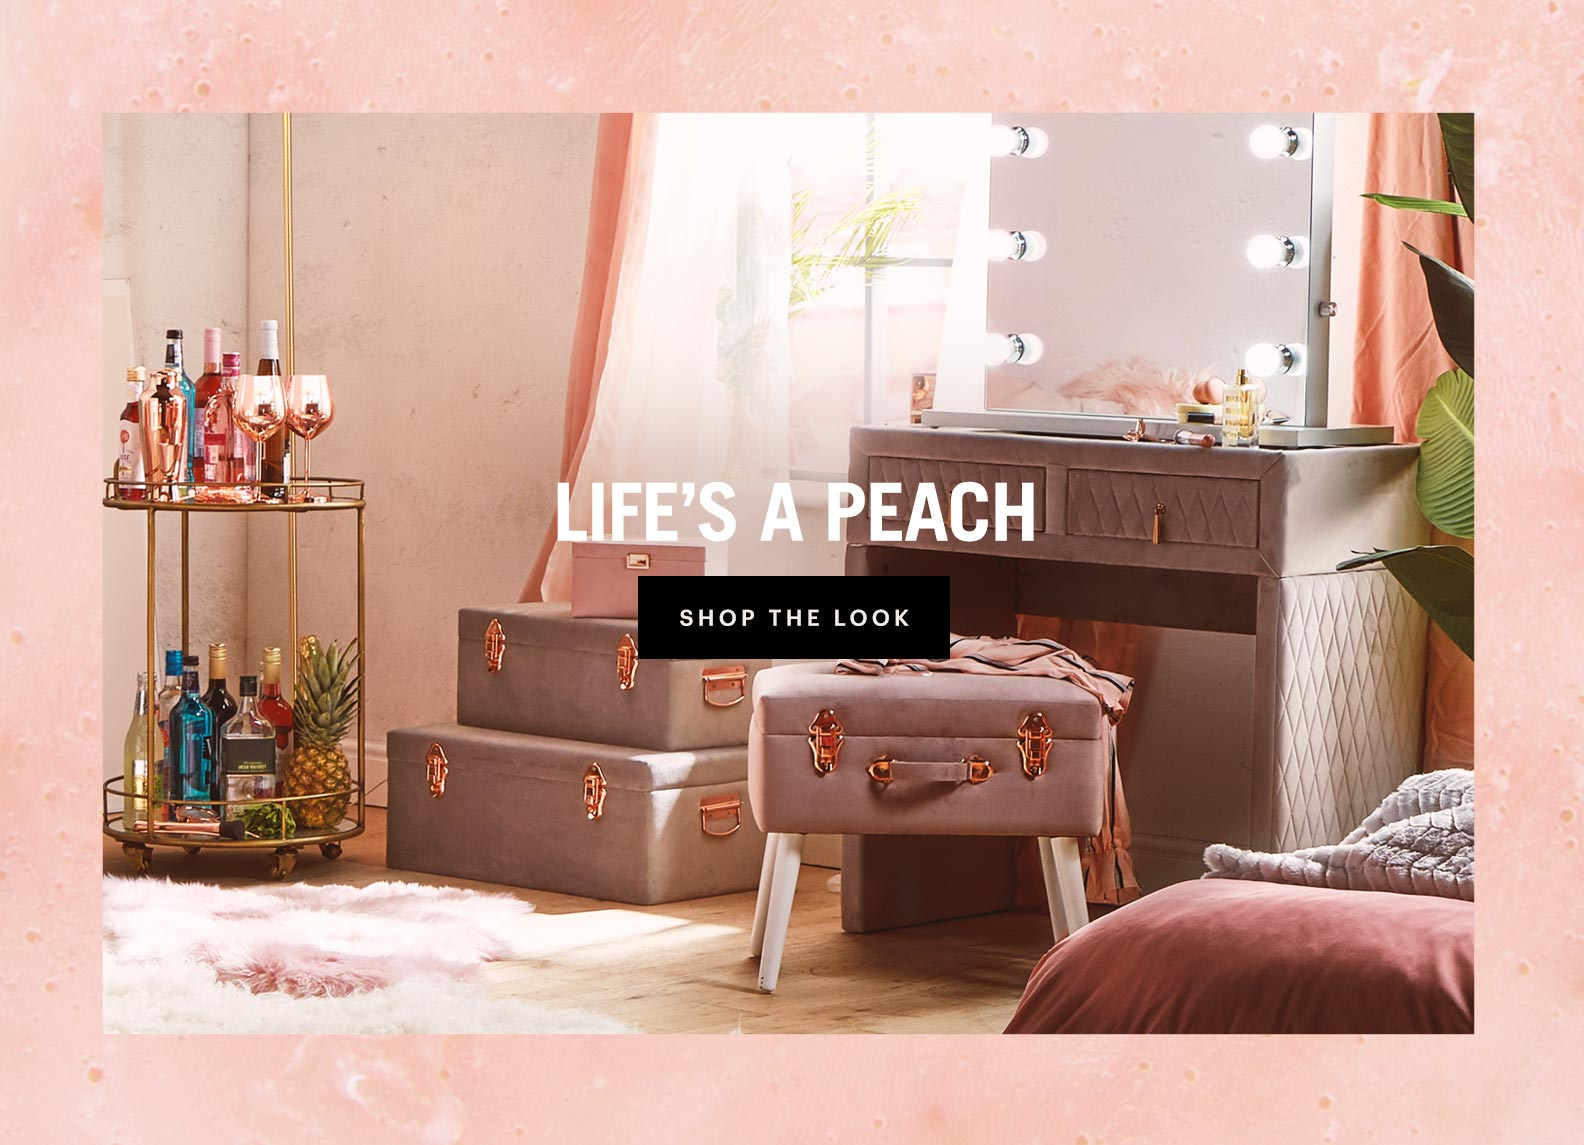 beautify life's a peach homeware and furniture collection